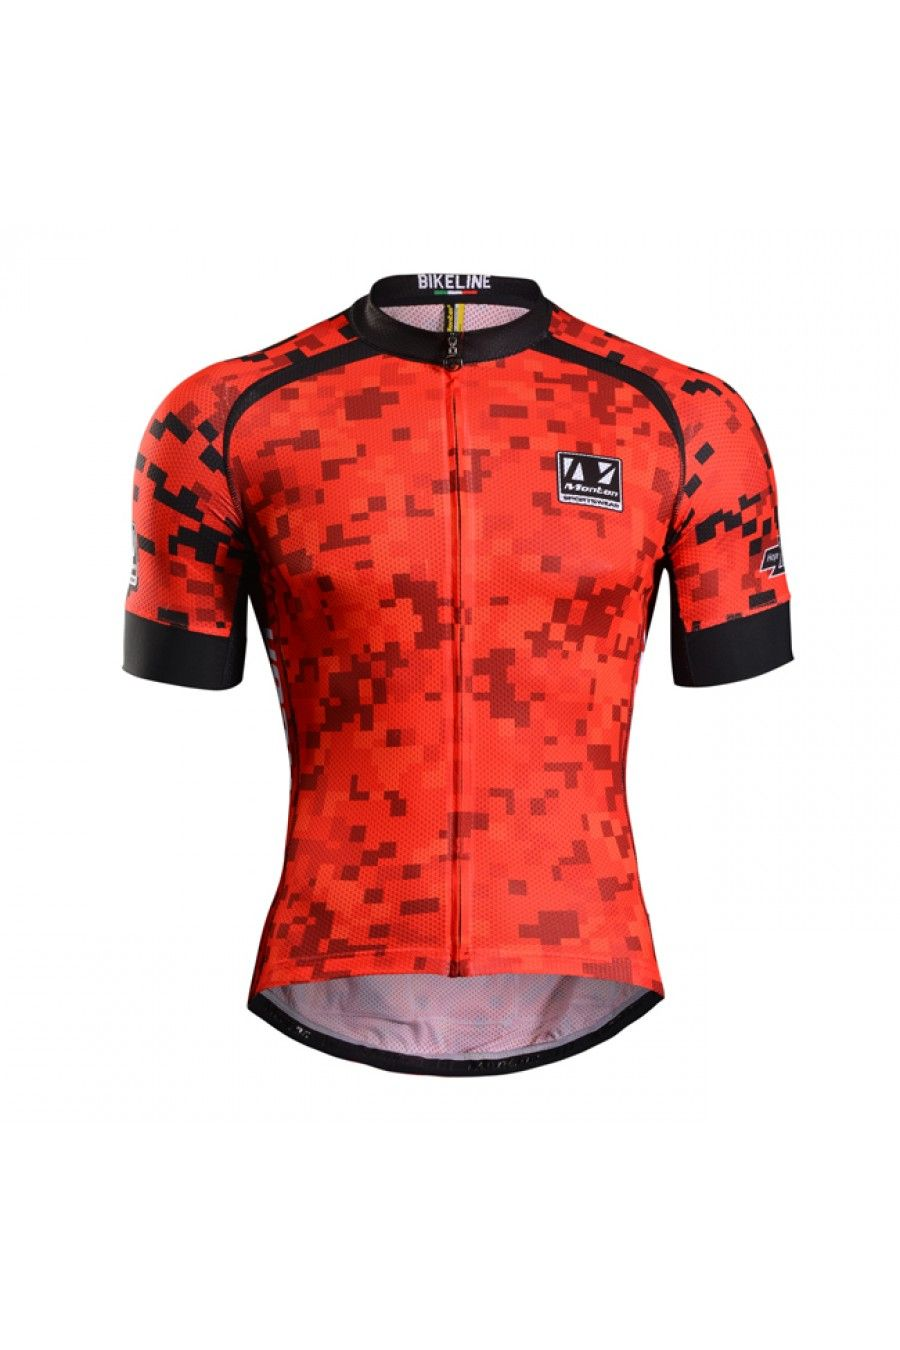 64f5ceb2d 2015 Pro Plus Mens Cool Cycling Jersey Red Devil